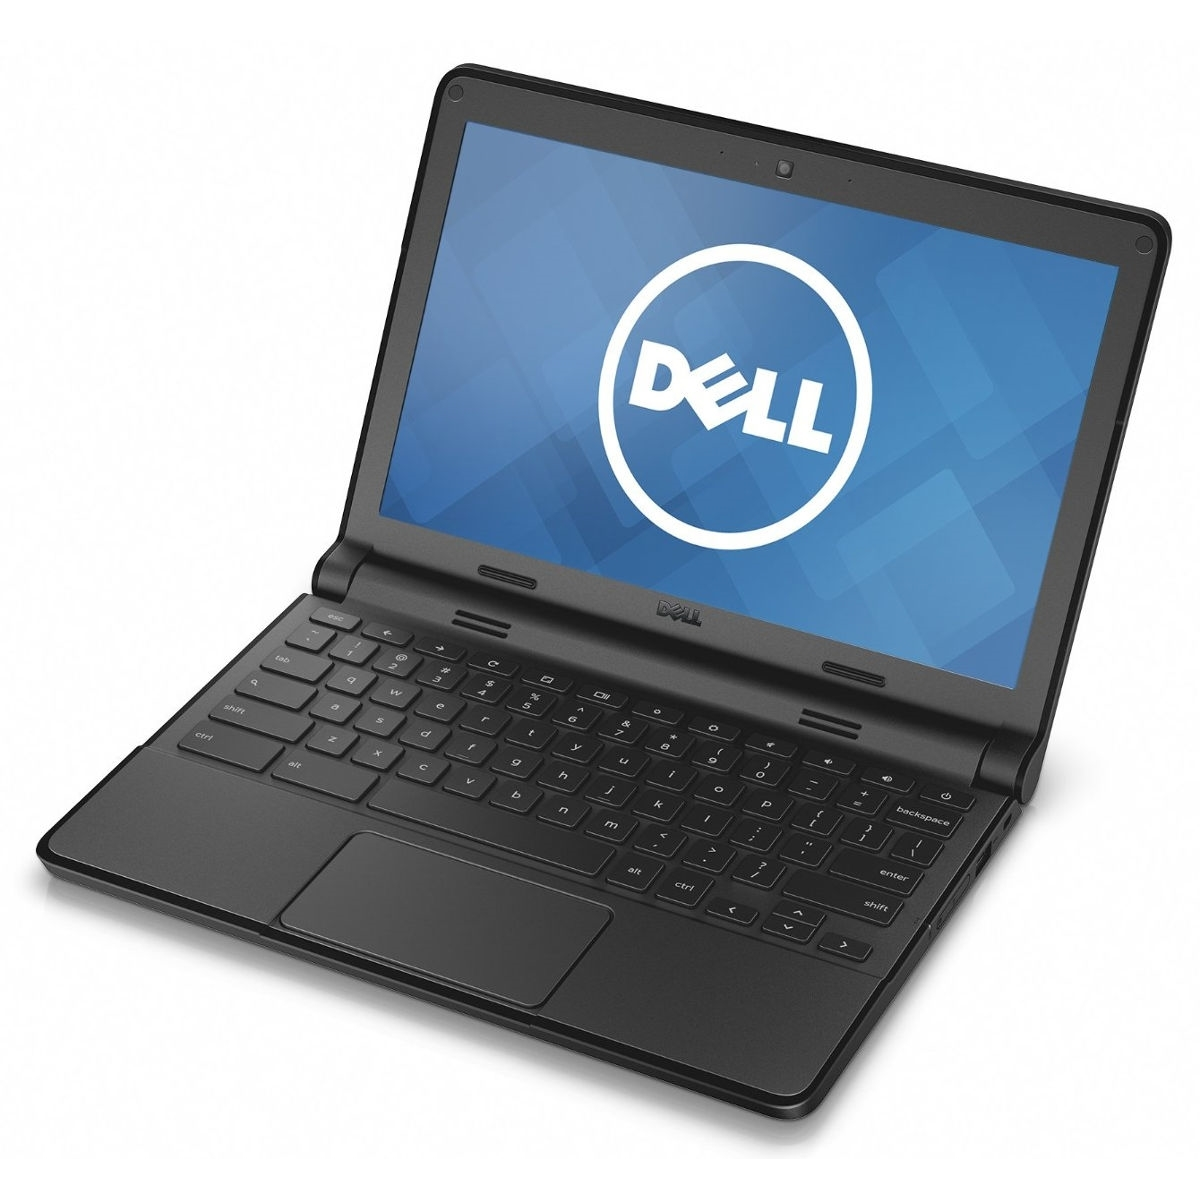 "Dell 11-3120 Intel Celeron N2840 X2 2.16GHz 4GB 16GB SSD 11.6"", Black  (Certified Refurbished)"